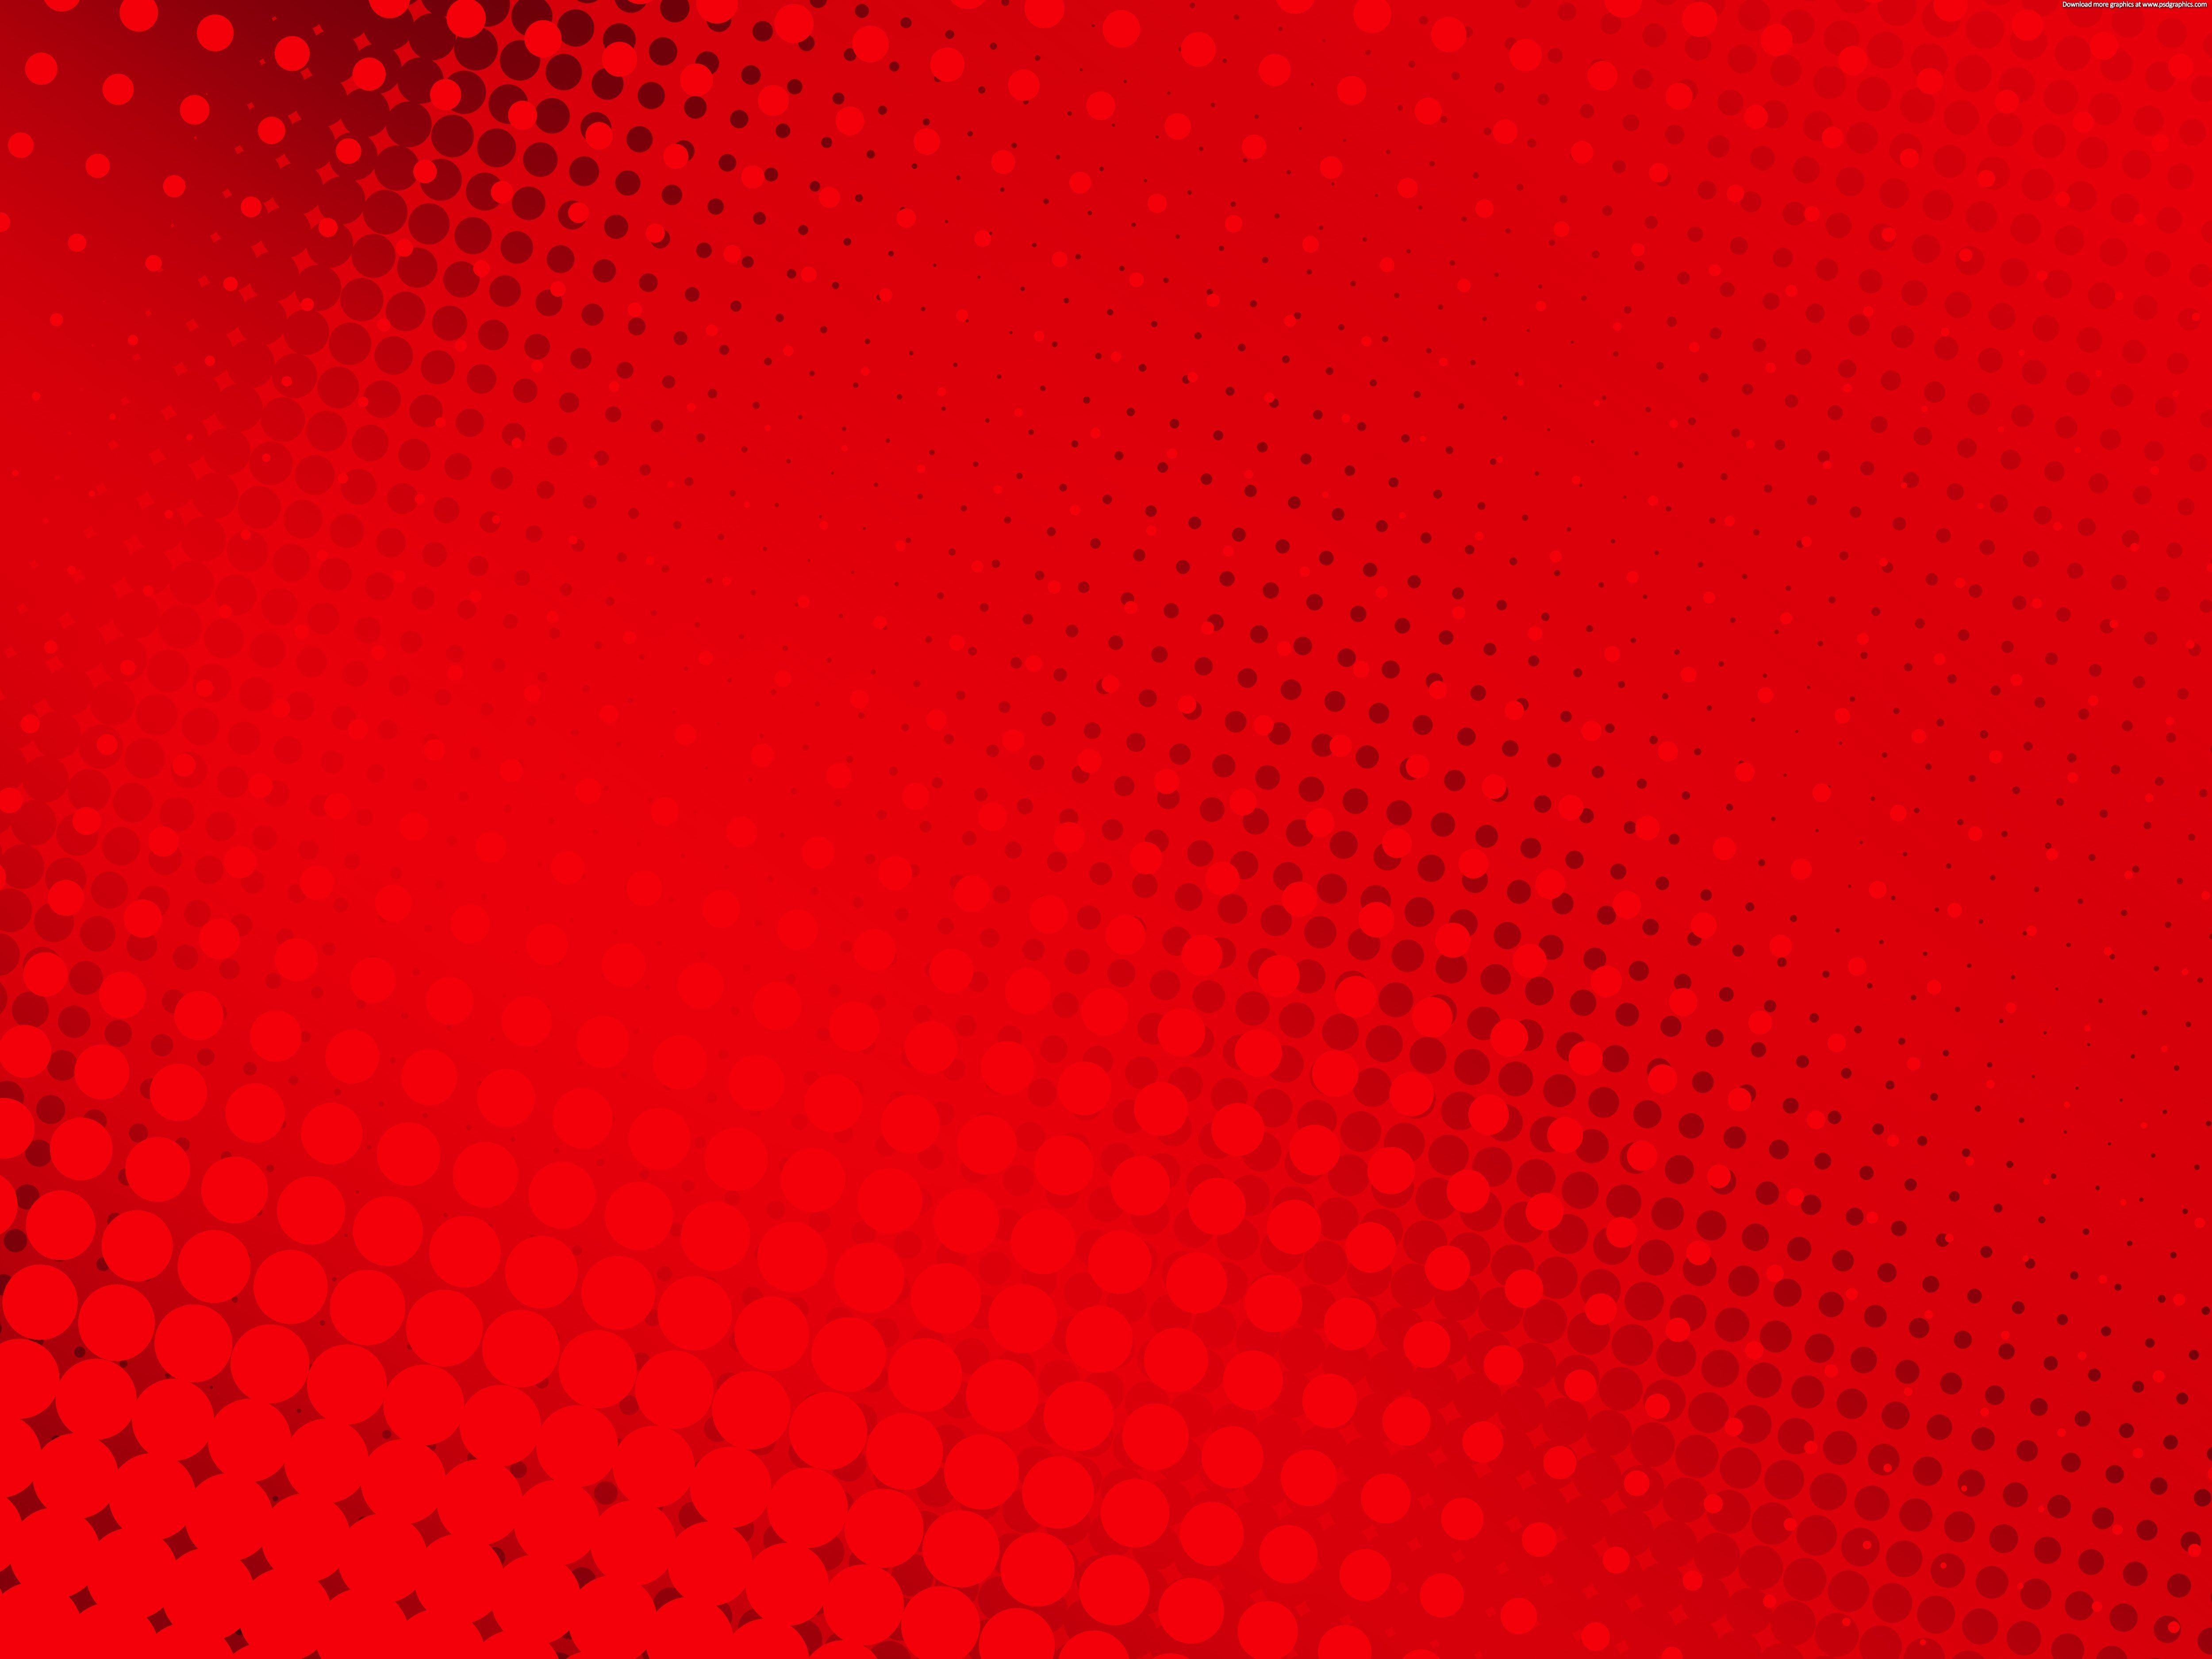 Best Background Images Red Backgrounds Page Background And Red Background On Pinterest Inside Best Red Background Images Red Background Dark Red Background